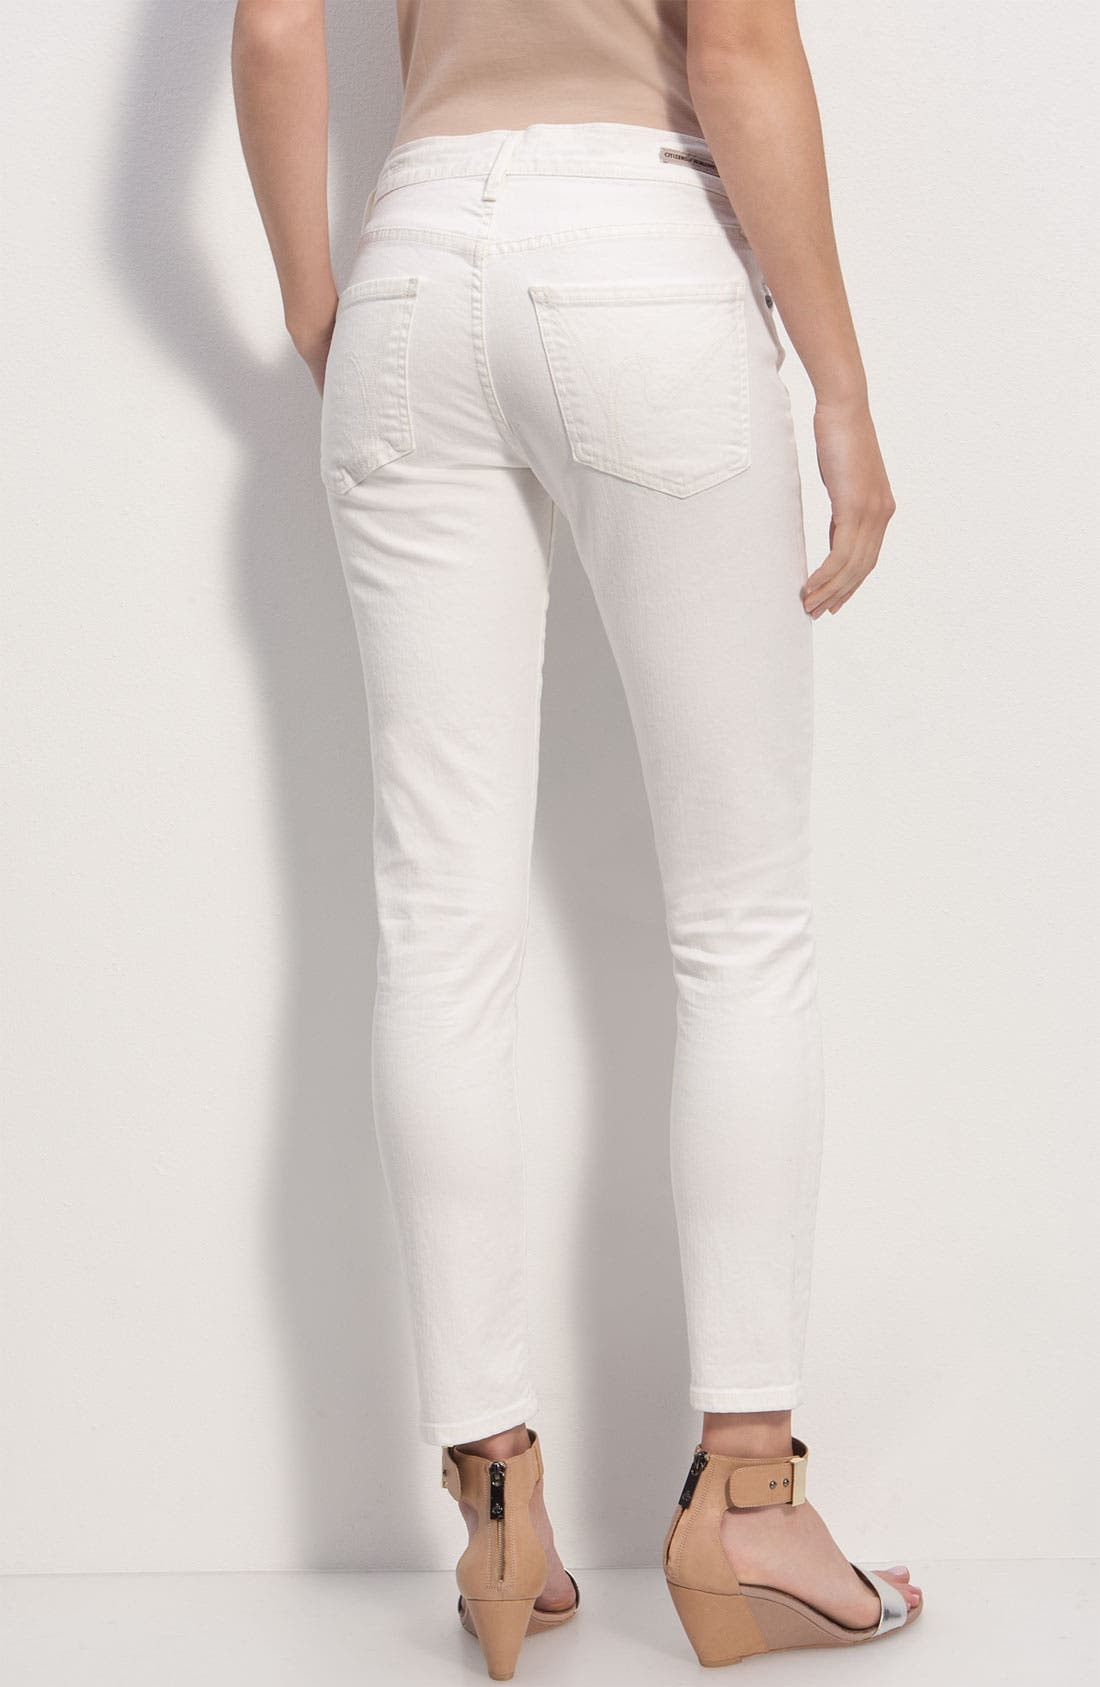 Alternate Image 1 Selected - Citizens of Humanity 'Thompson' Crop Skinny Jeans (Vintage Ivory)